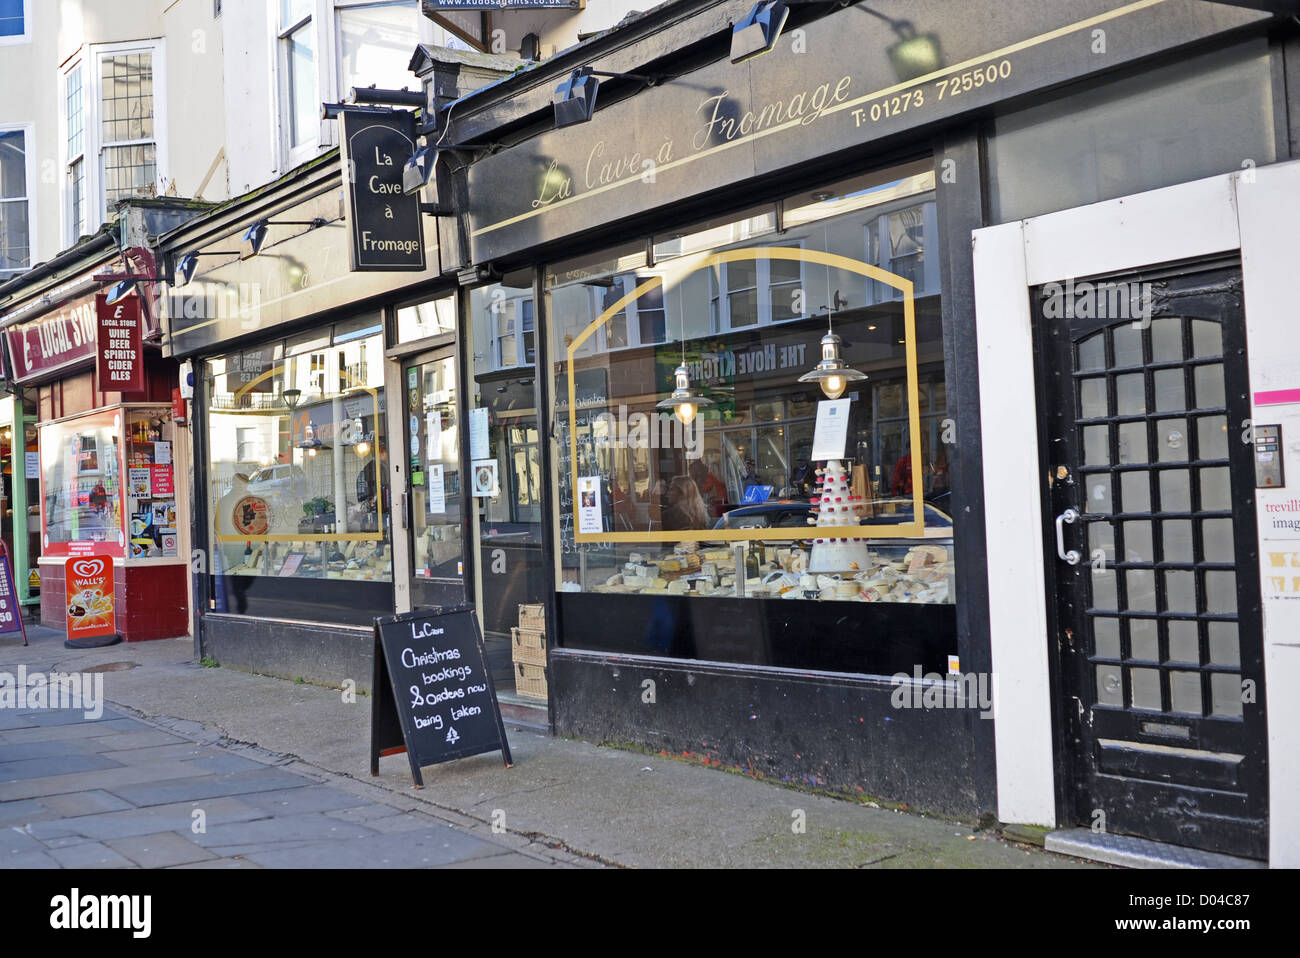 La Cave a Fromage the famous cheese shop in Hove Brighton East Sussex UK - Stock Image